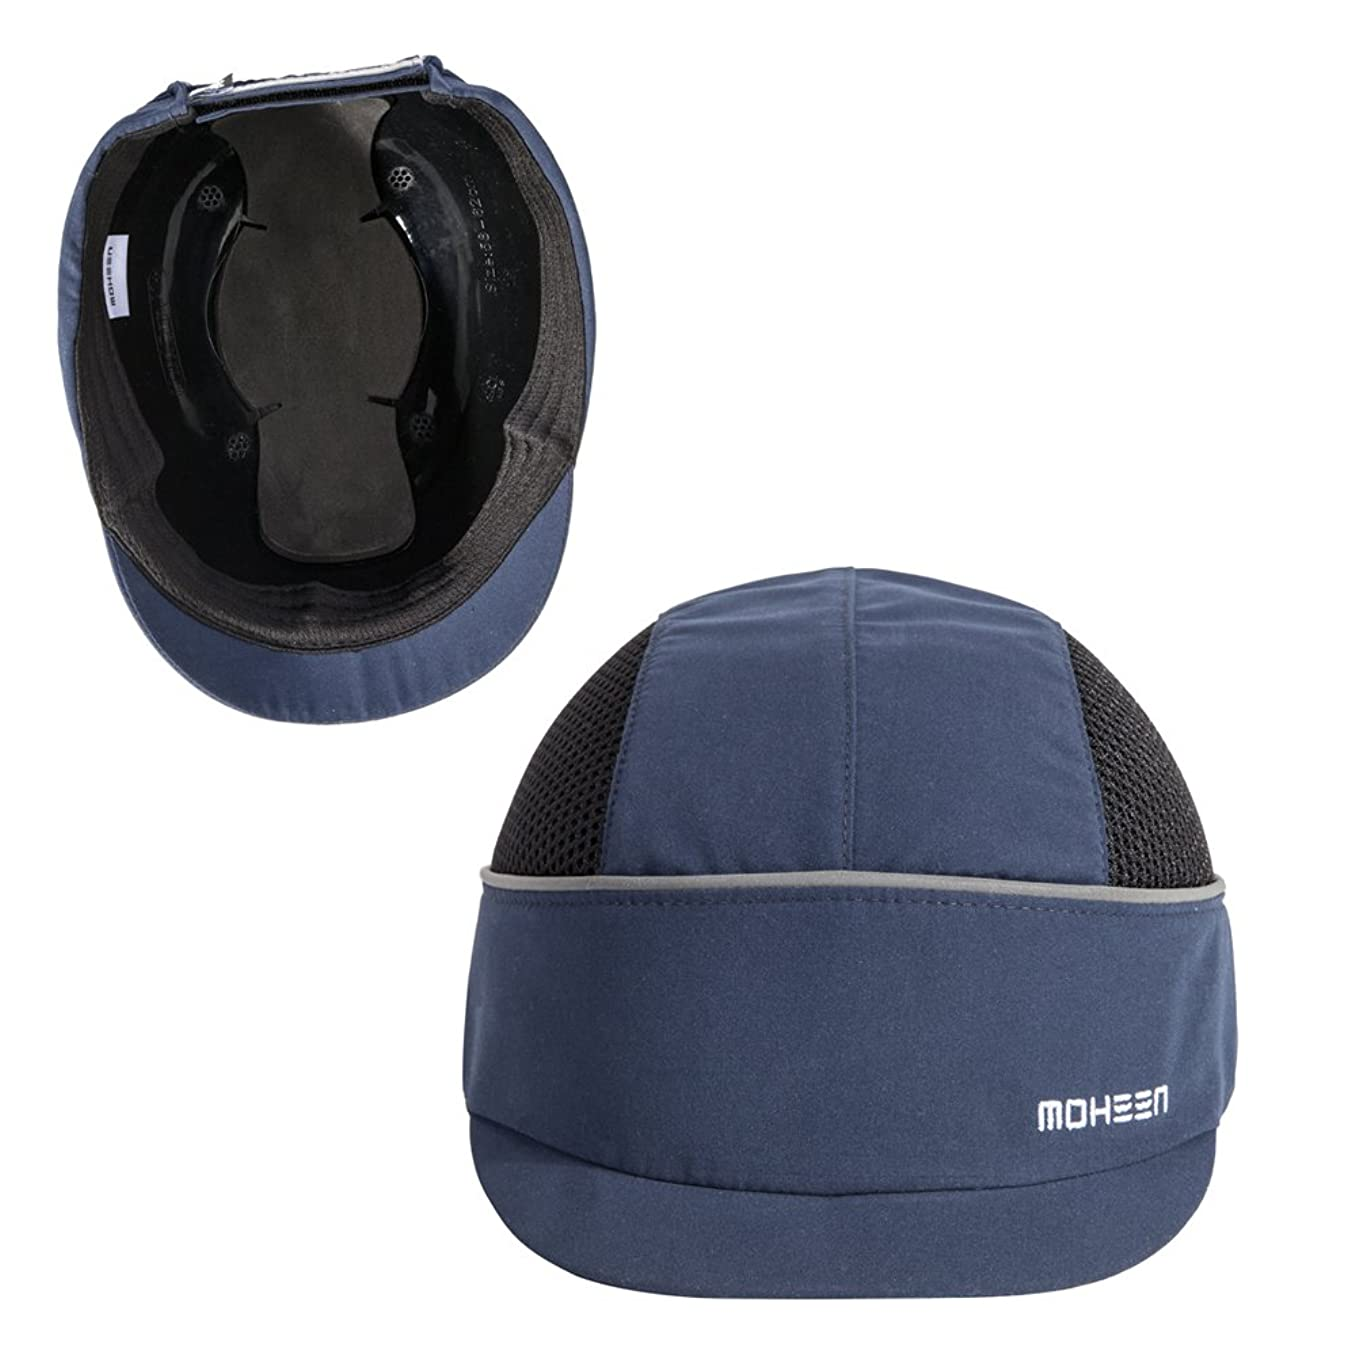 Safety Bump Cap with With Reflective Stripes, Lightweight and Breathable Hard Hat Head Protection Cap(Micro,Blue)